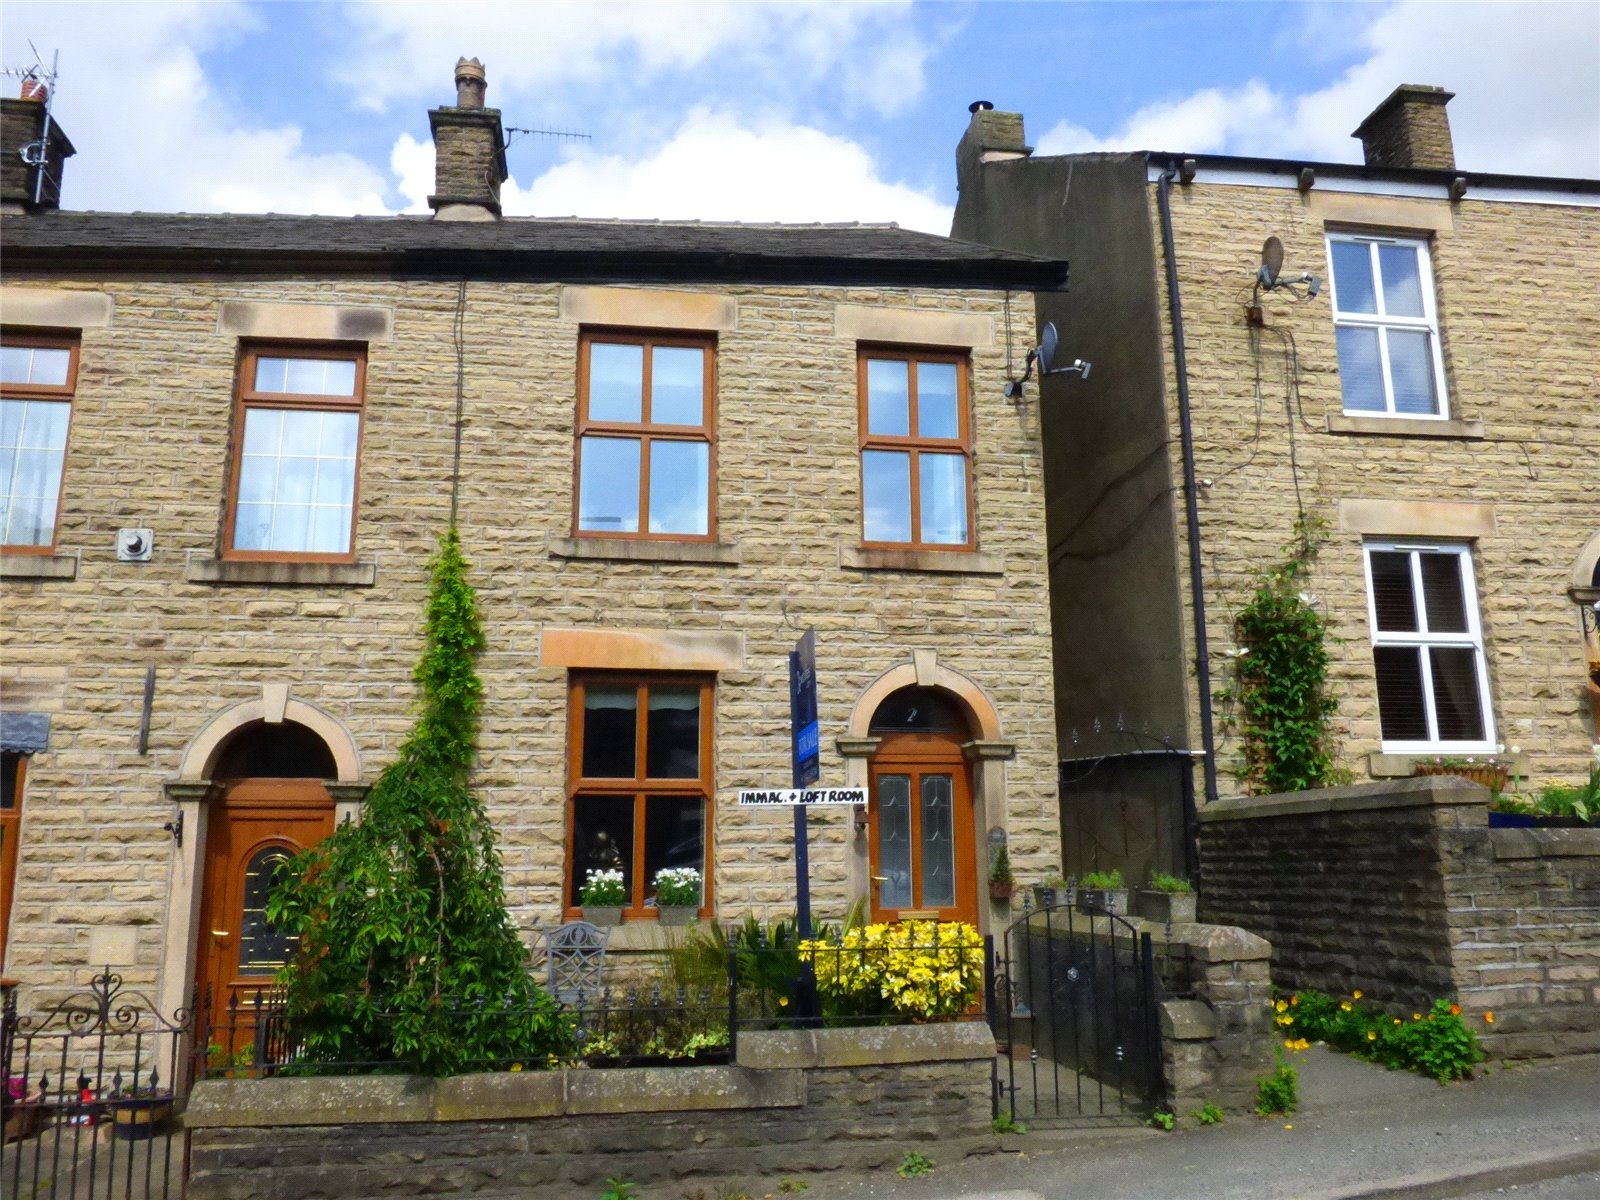 2 Bedrooms Semi Detached House for sale in Park Road, Hadfield, Glossop, SK13